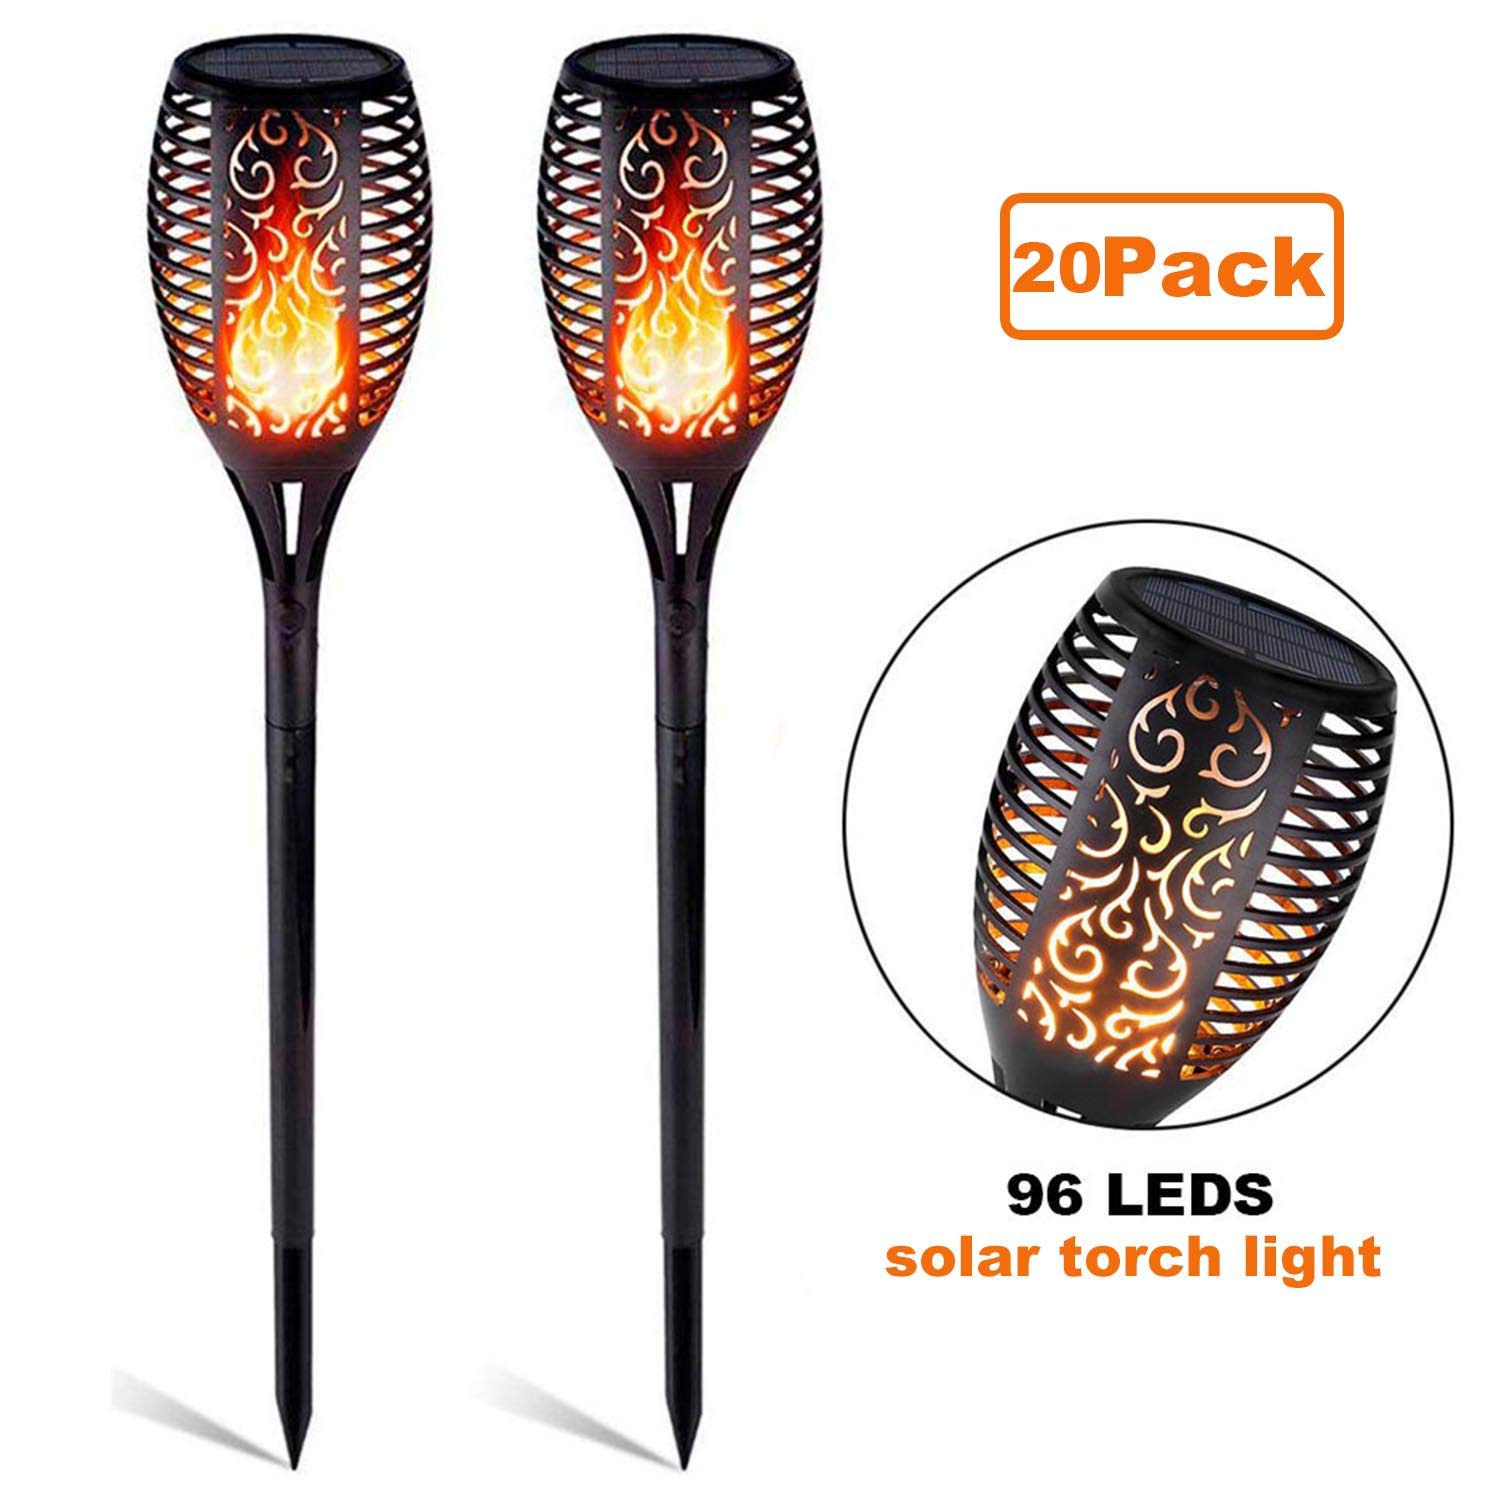 papasbox Solar Lights, 20 PCS Solar Lights Outdoor Flickering Flames Torches Lights Security Landscape Decoration Lighting Dusk to Dawn Auto On/Off for Garden Pathway